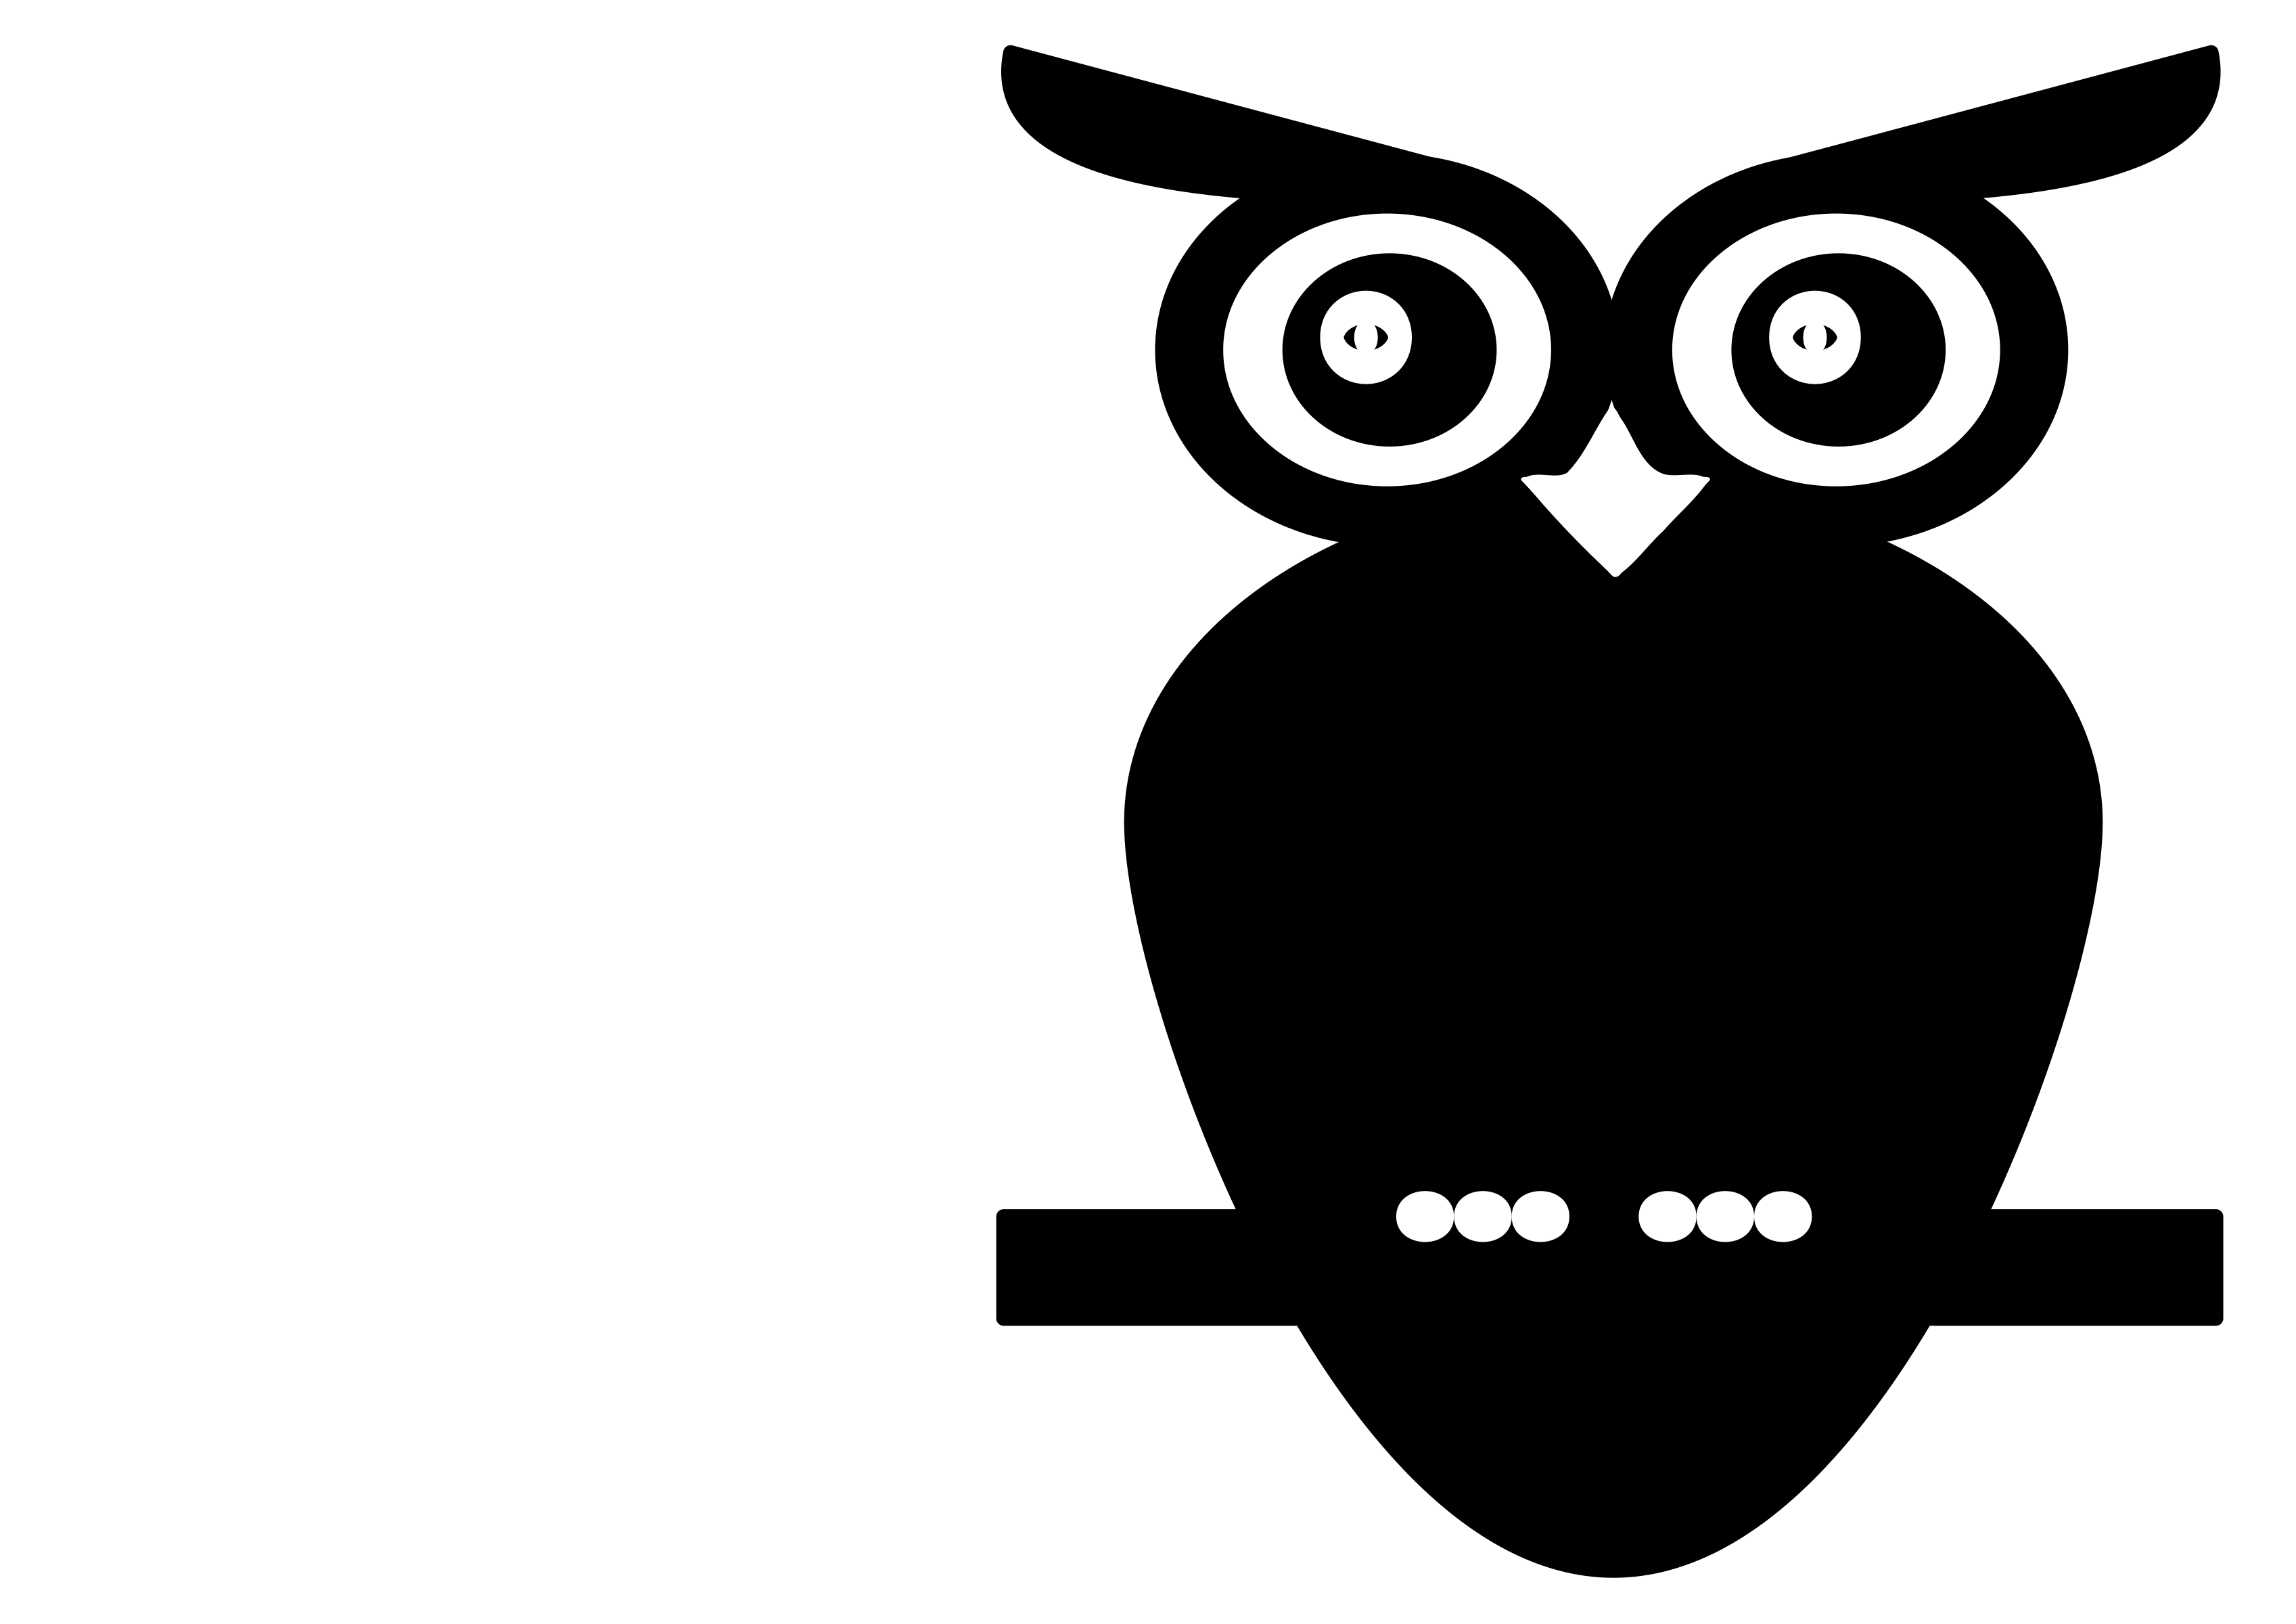 Owl book black and white clipart graphic transparent library Black and White Owl Icons PNG - Free PNG and Icons Downloads graphic transparent library